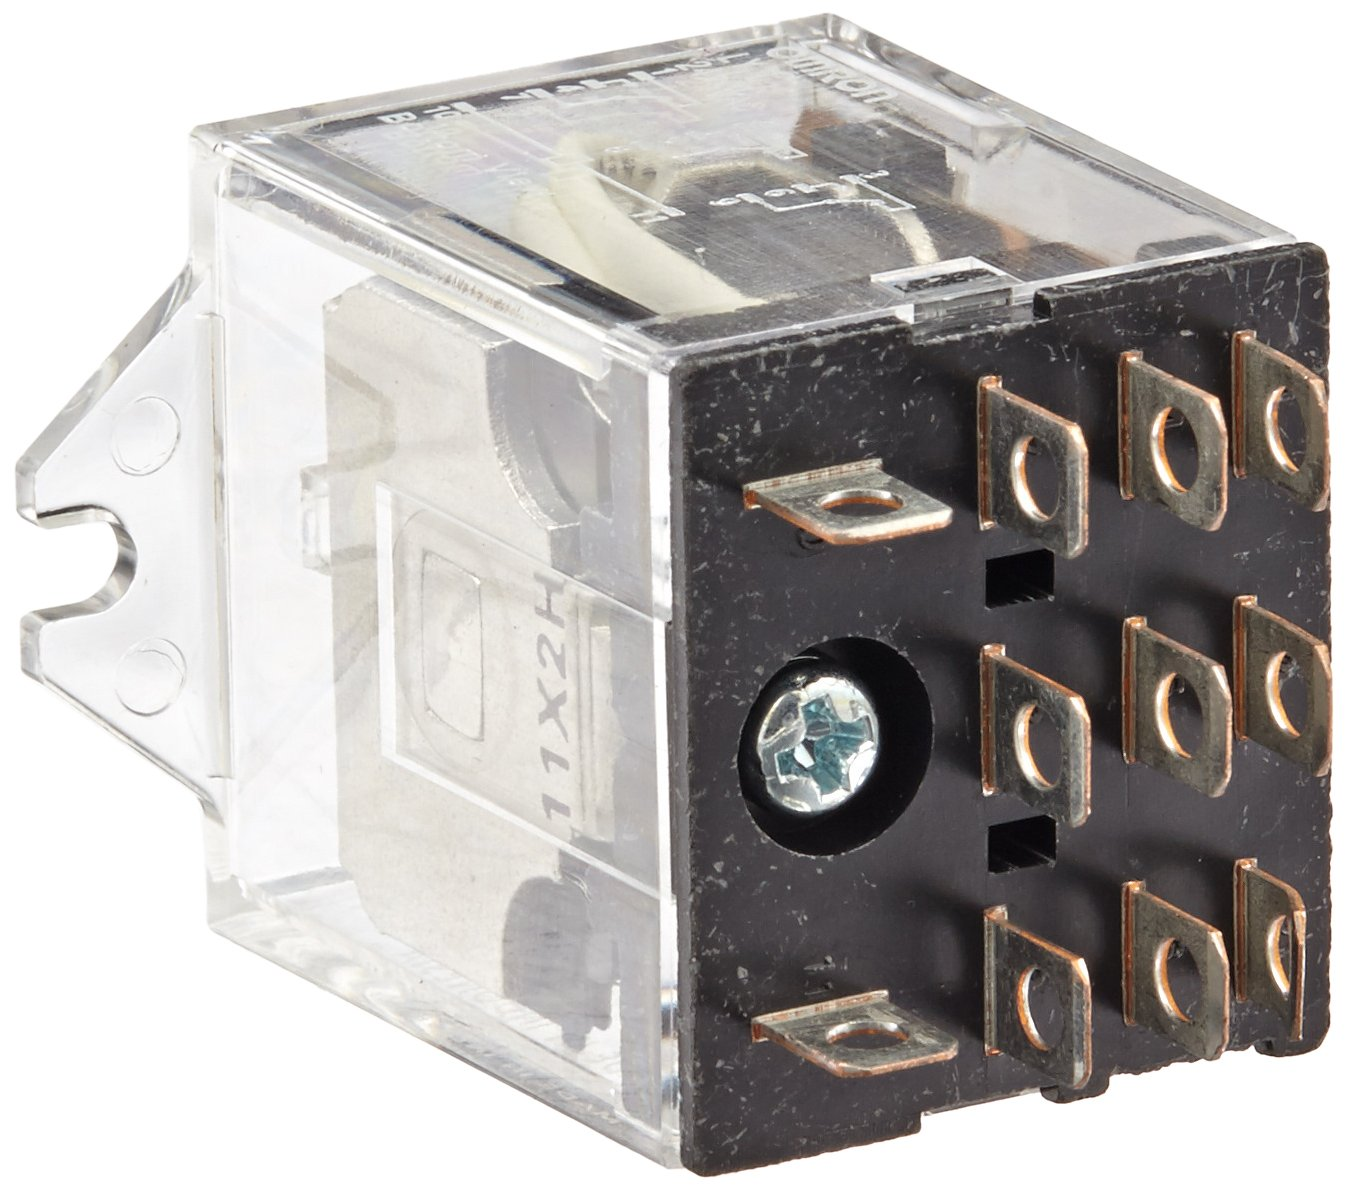 Omron LY3F-AC24 General Purpose Relay, Standard Type, Plug-In/Solder Terminal, Upper Mounting Bracket, Single Contact, Triple Pole Double Throw Contacts, 80 mA at 50 Hz and 67 mA at 60 Hz Rated Load Current, 24 VAC Rated Load Voltage